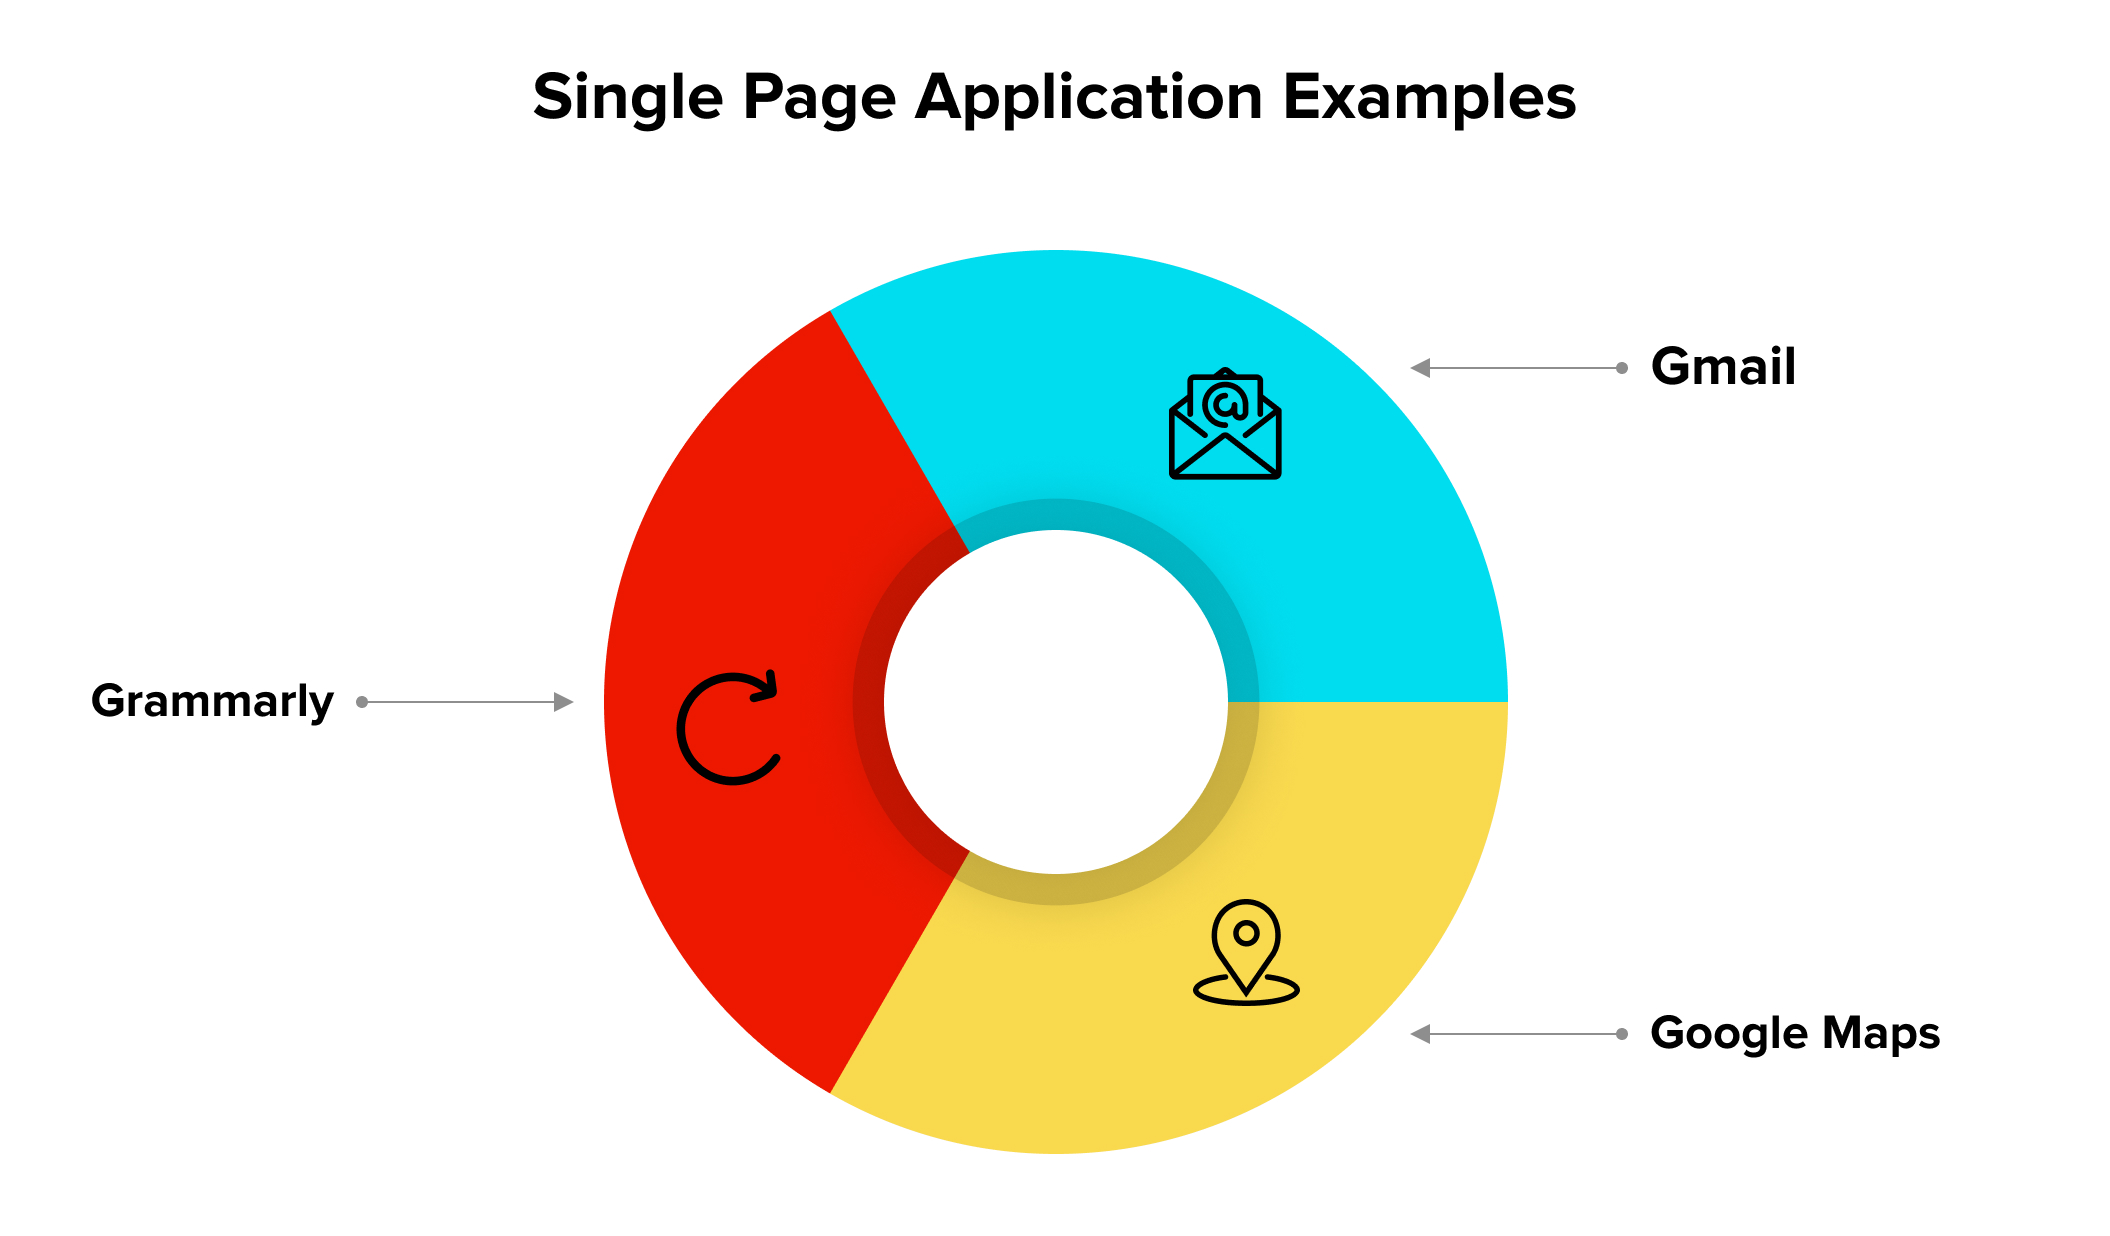 Single Page Application Examples